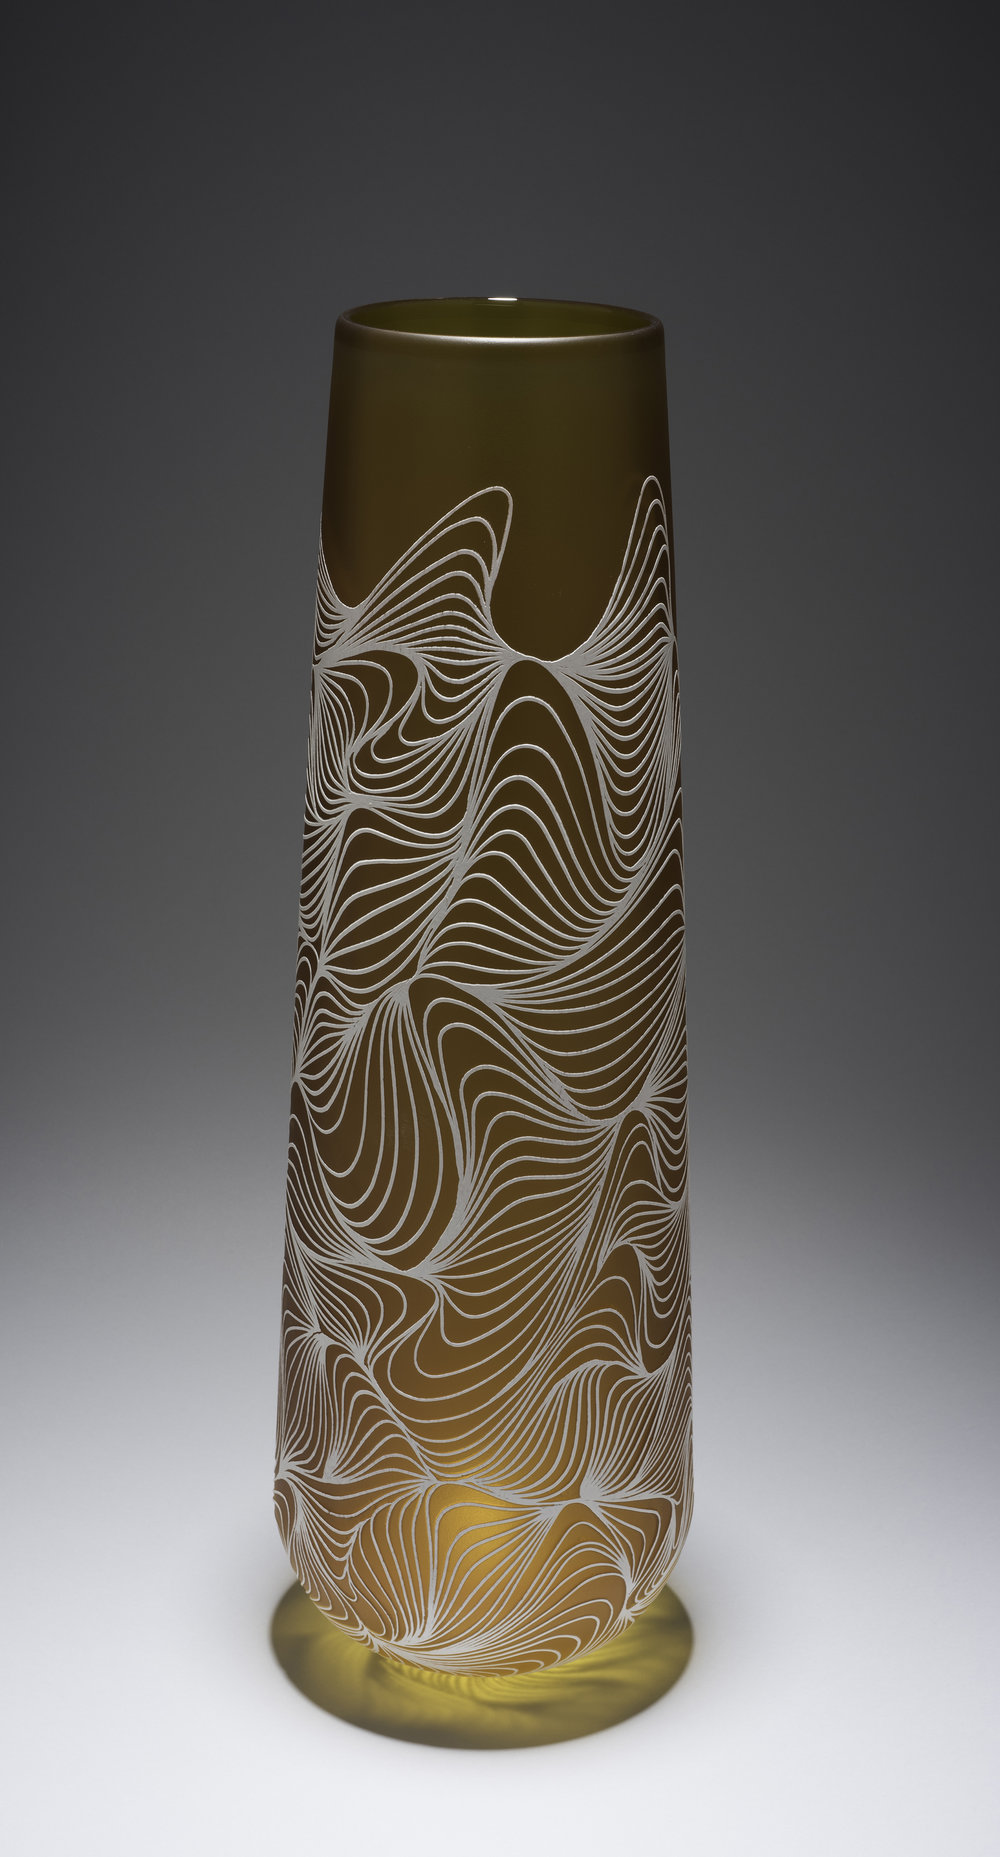 Armelle Bouchet O'Neill (French, born 1980).  Kasvu,  Made at the Museum in 2013. Blown, etched, and sand-carved glass; 21 1/2 x 6 x 8 3/4 in. Collection of Museum of Glass, Tacoma, Washington, gift of the artist. Photo by Duncan Price.